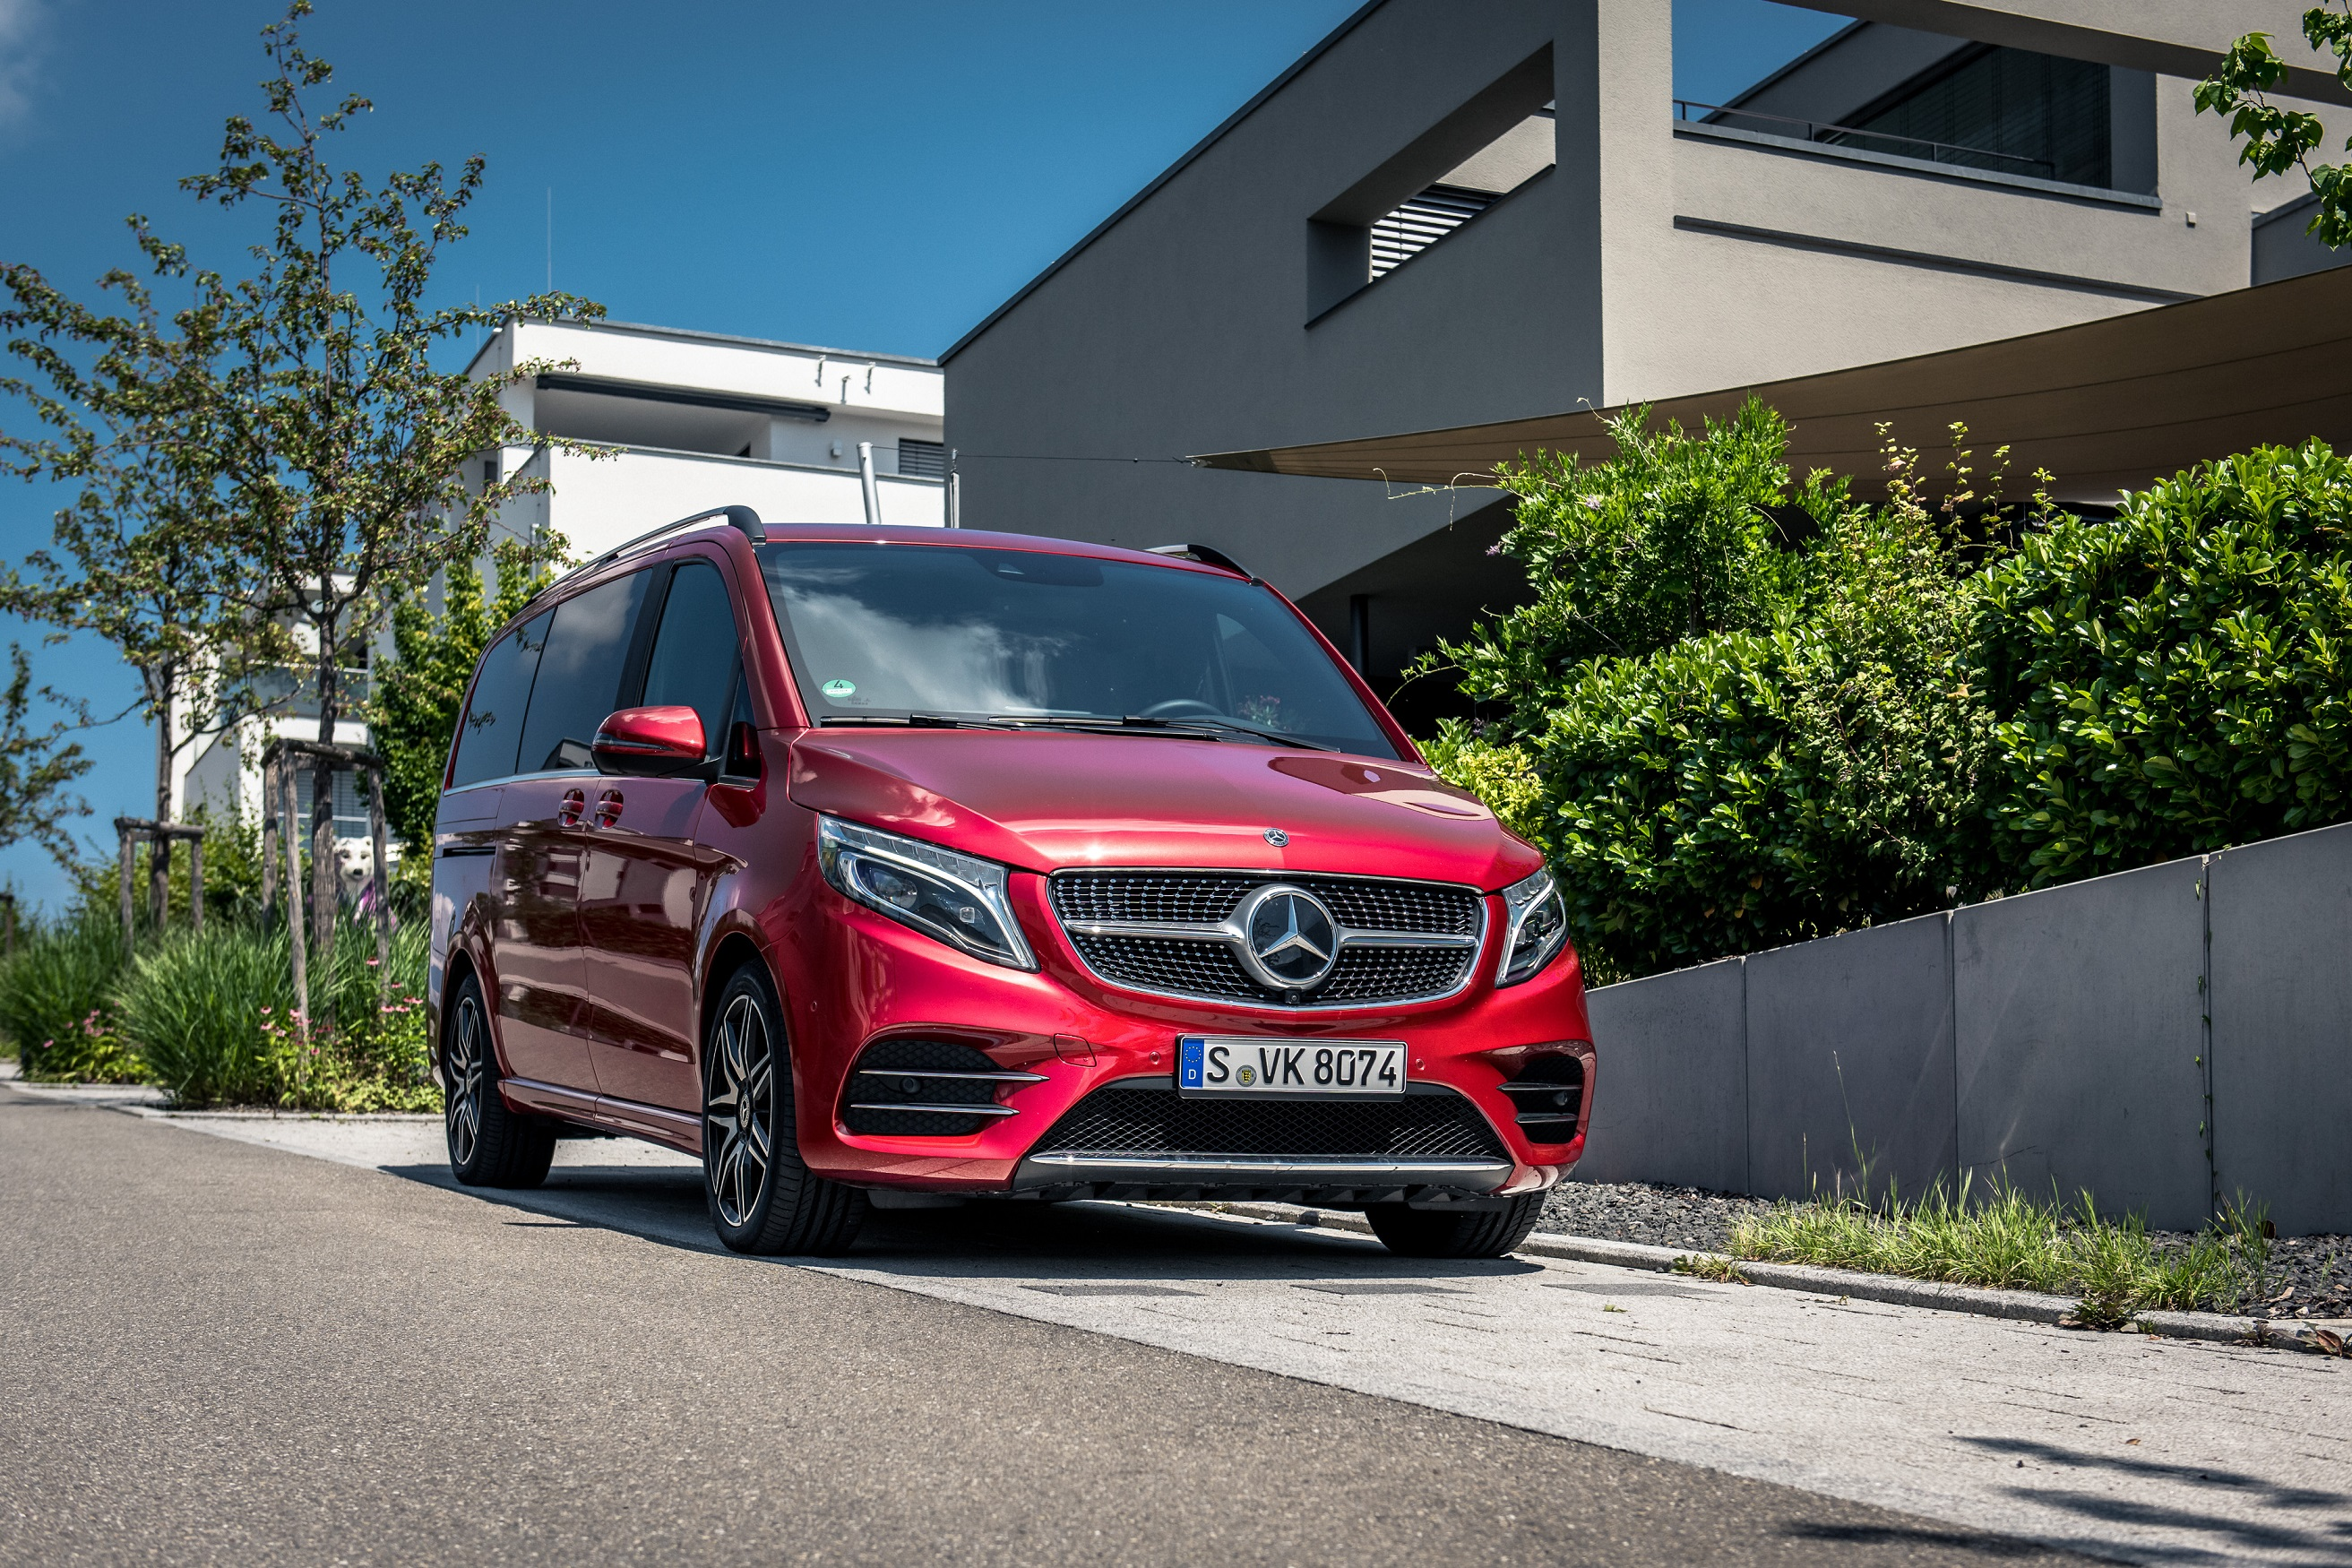 The new Mercedes-Benz V-Class in Qatar .. more attractive, more luxurious